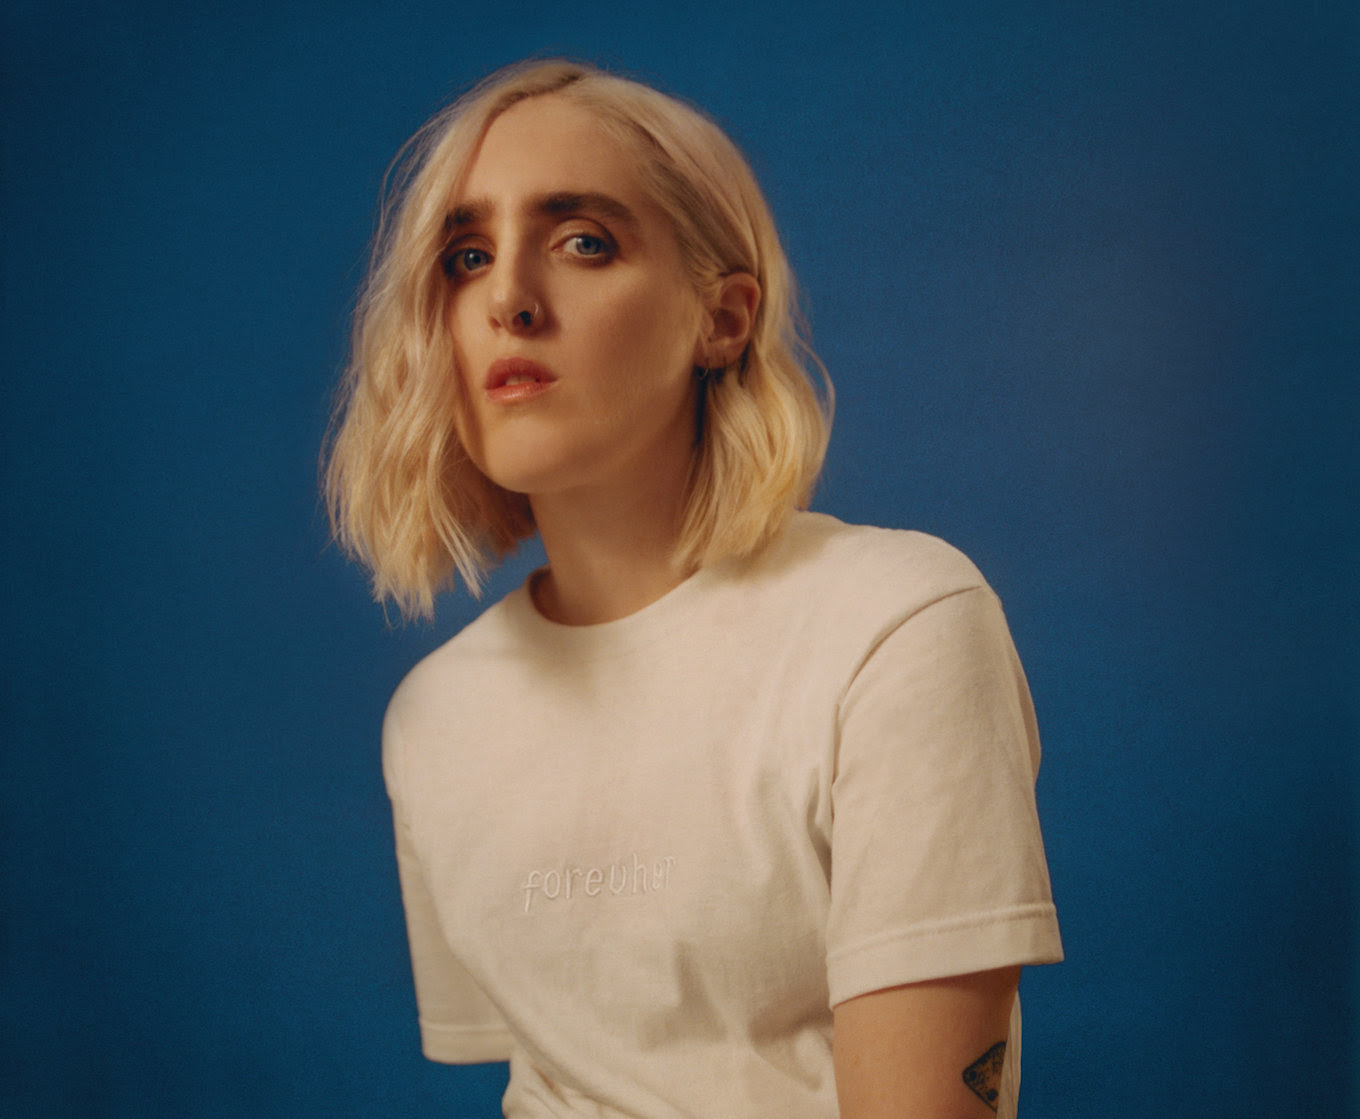 """BKLYNLDN"" by Shura is Northern Transmissions' 'Song of the Day.' The track is off the singer/songwriter's forthcoming release for Secretly Canadian"